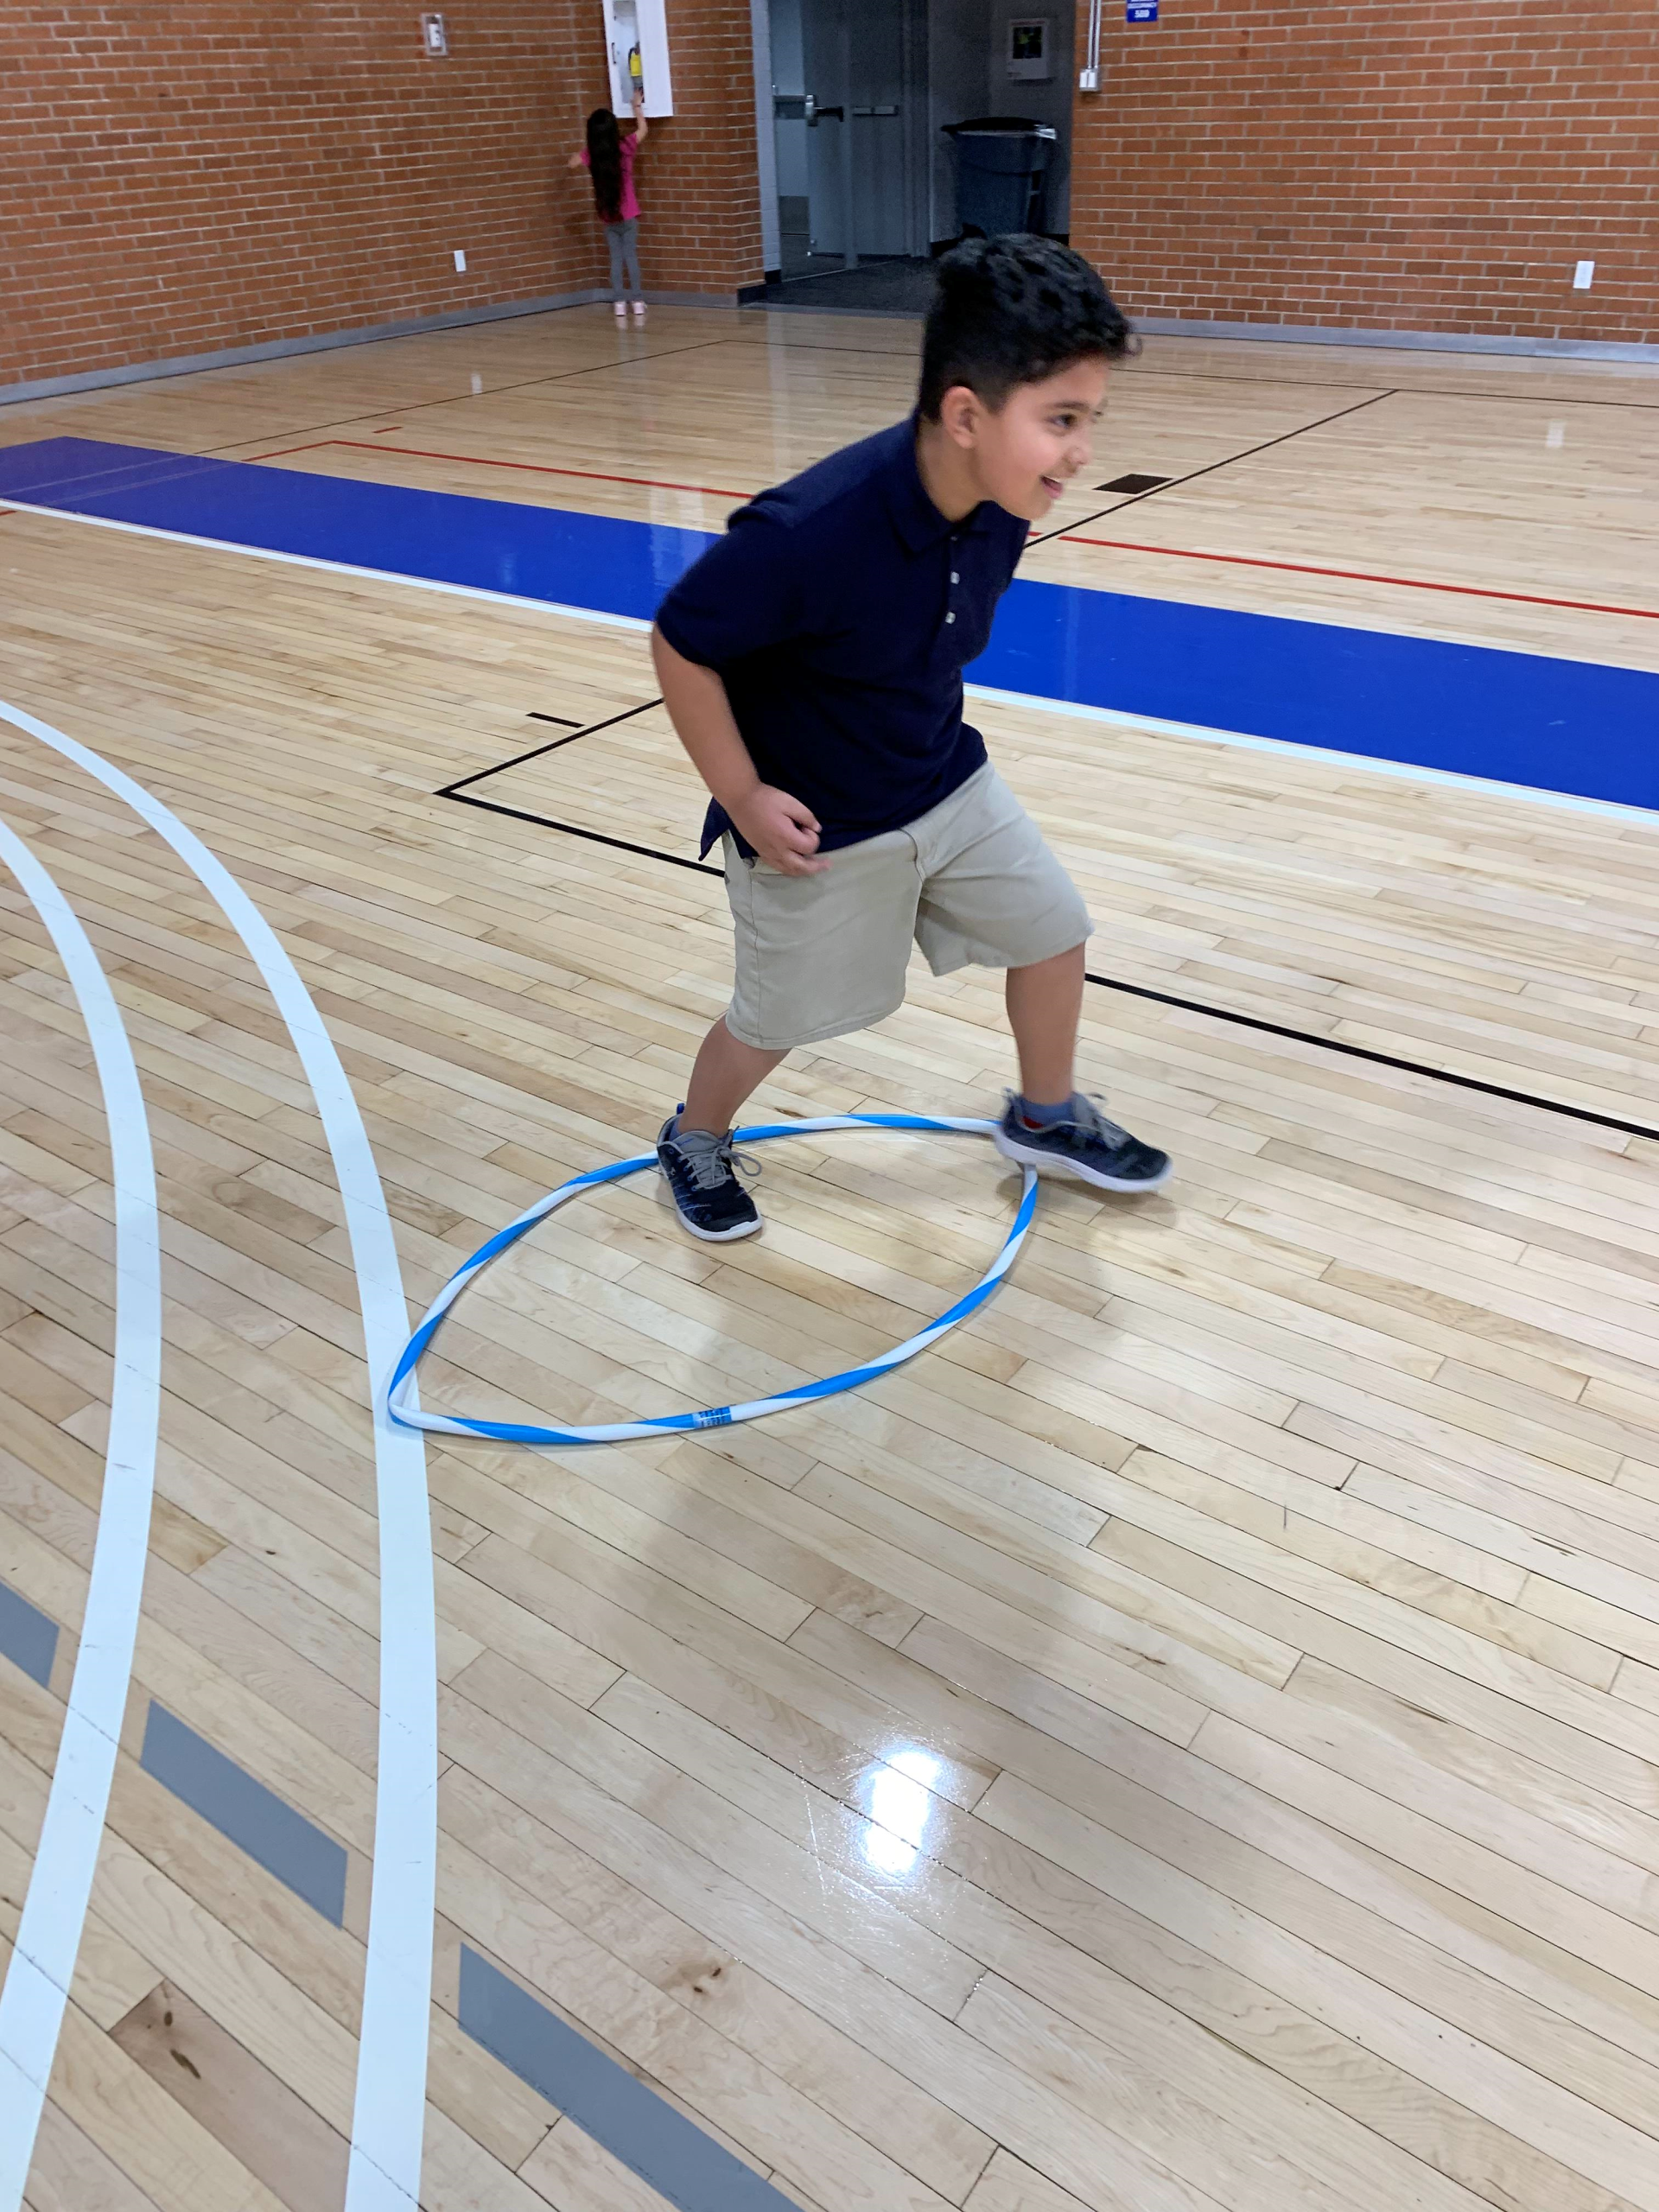 Eagles Community Center Gym Hula Hoop Fun